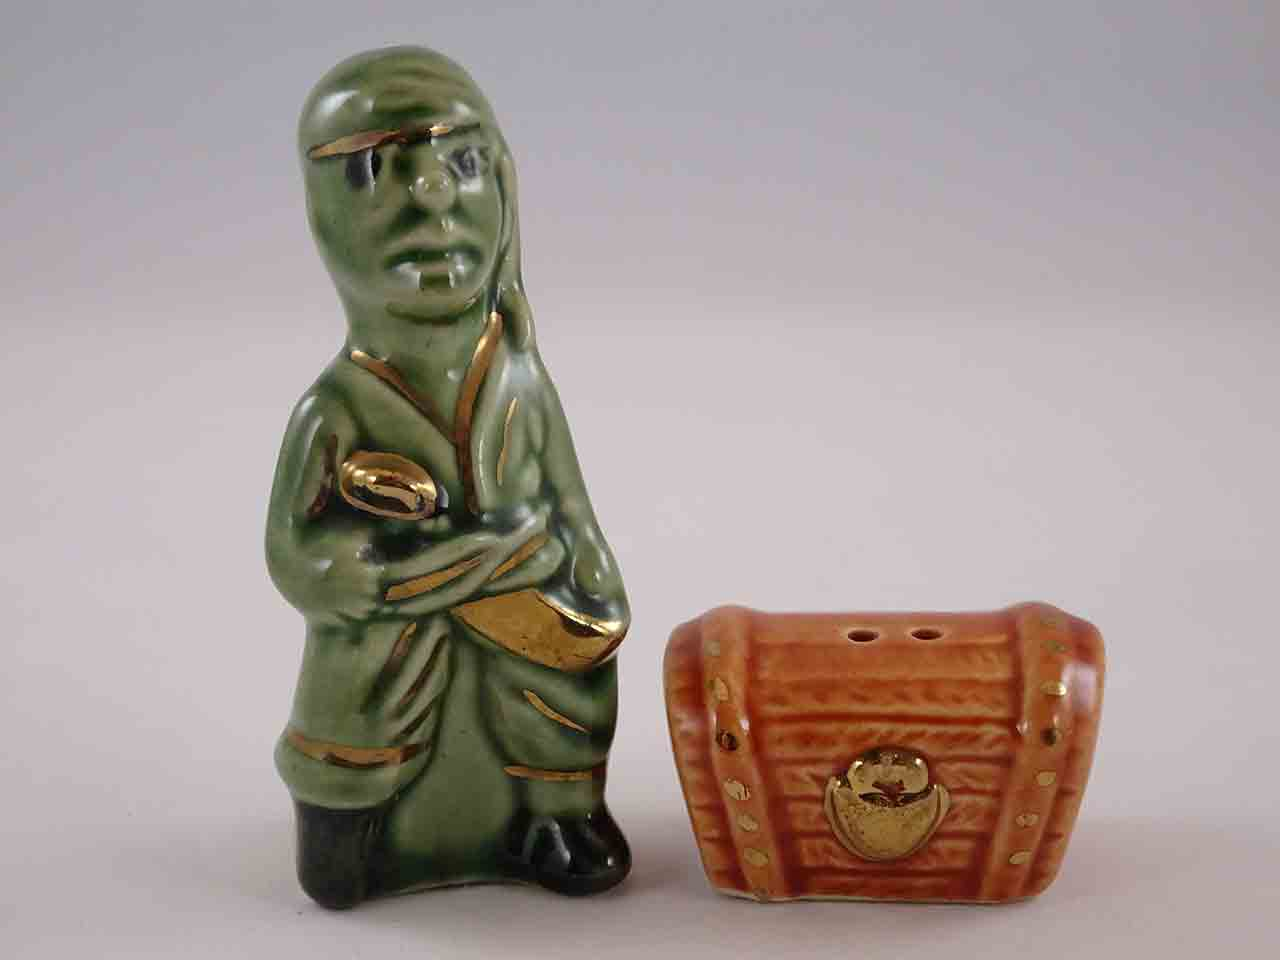 Go with pirate and treasure chest in gold trim salt and pepper shakers